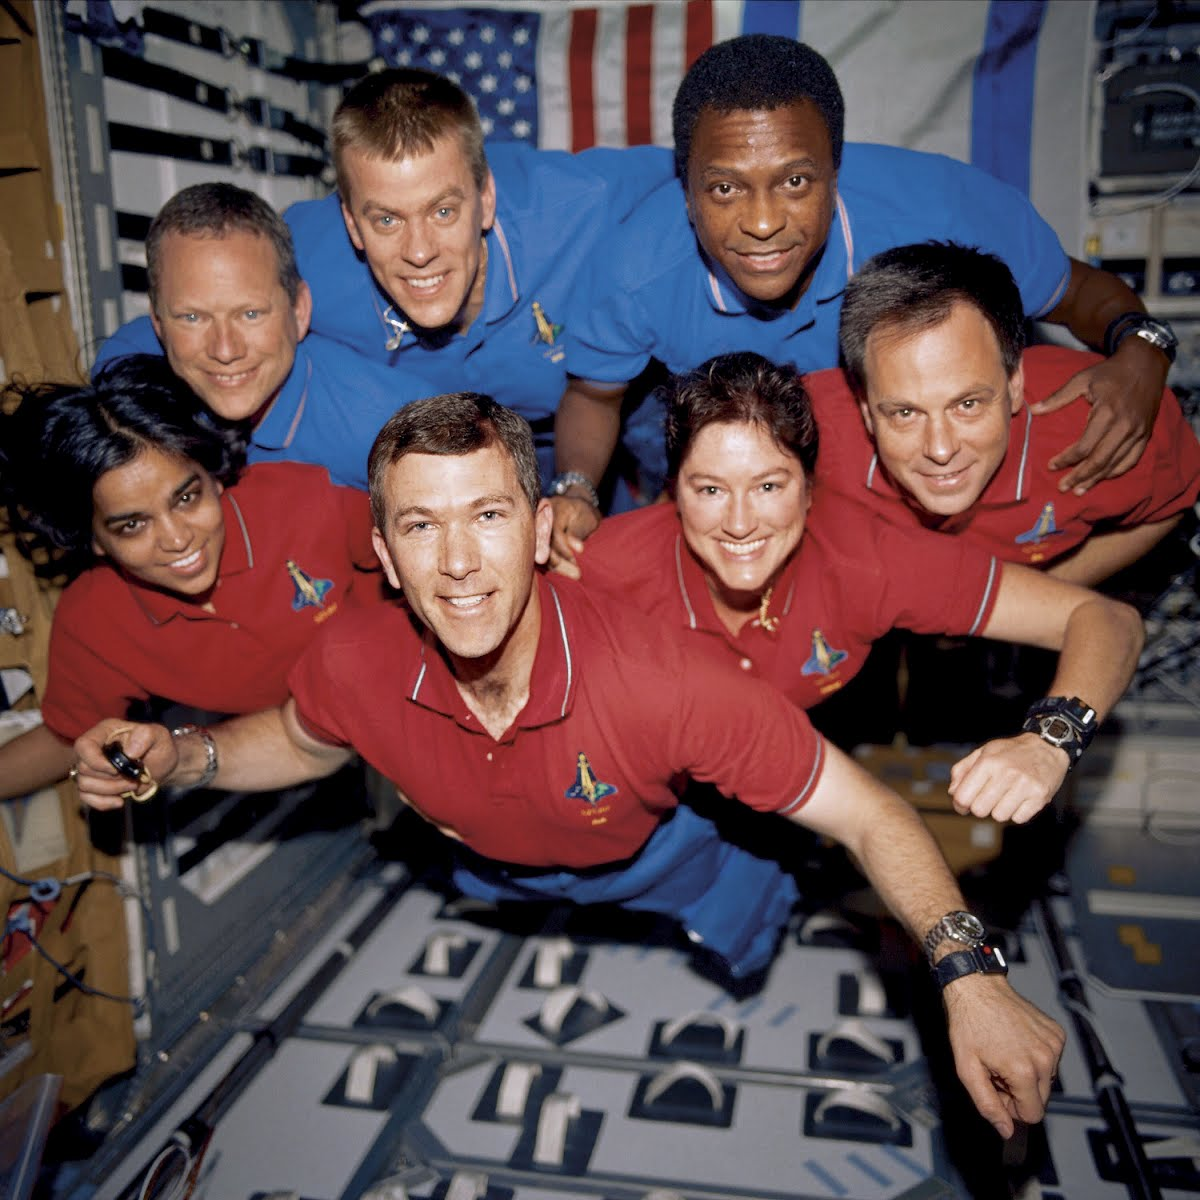 space shuttle columbia disaster crew - photo #19